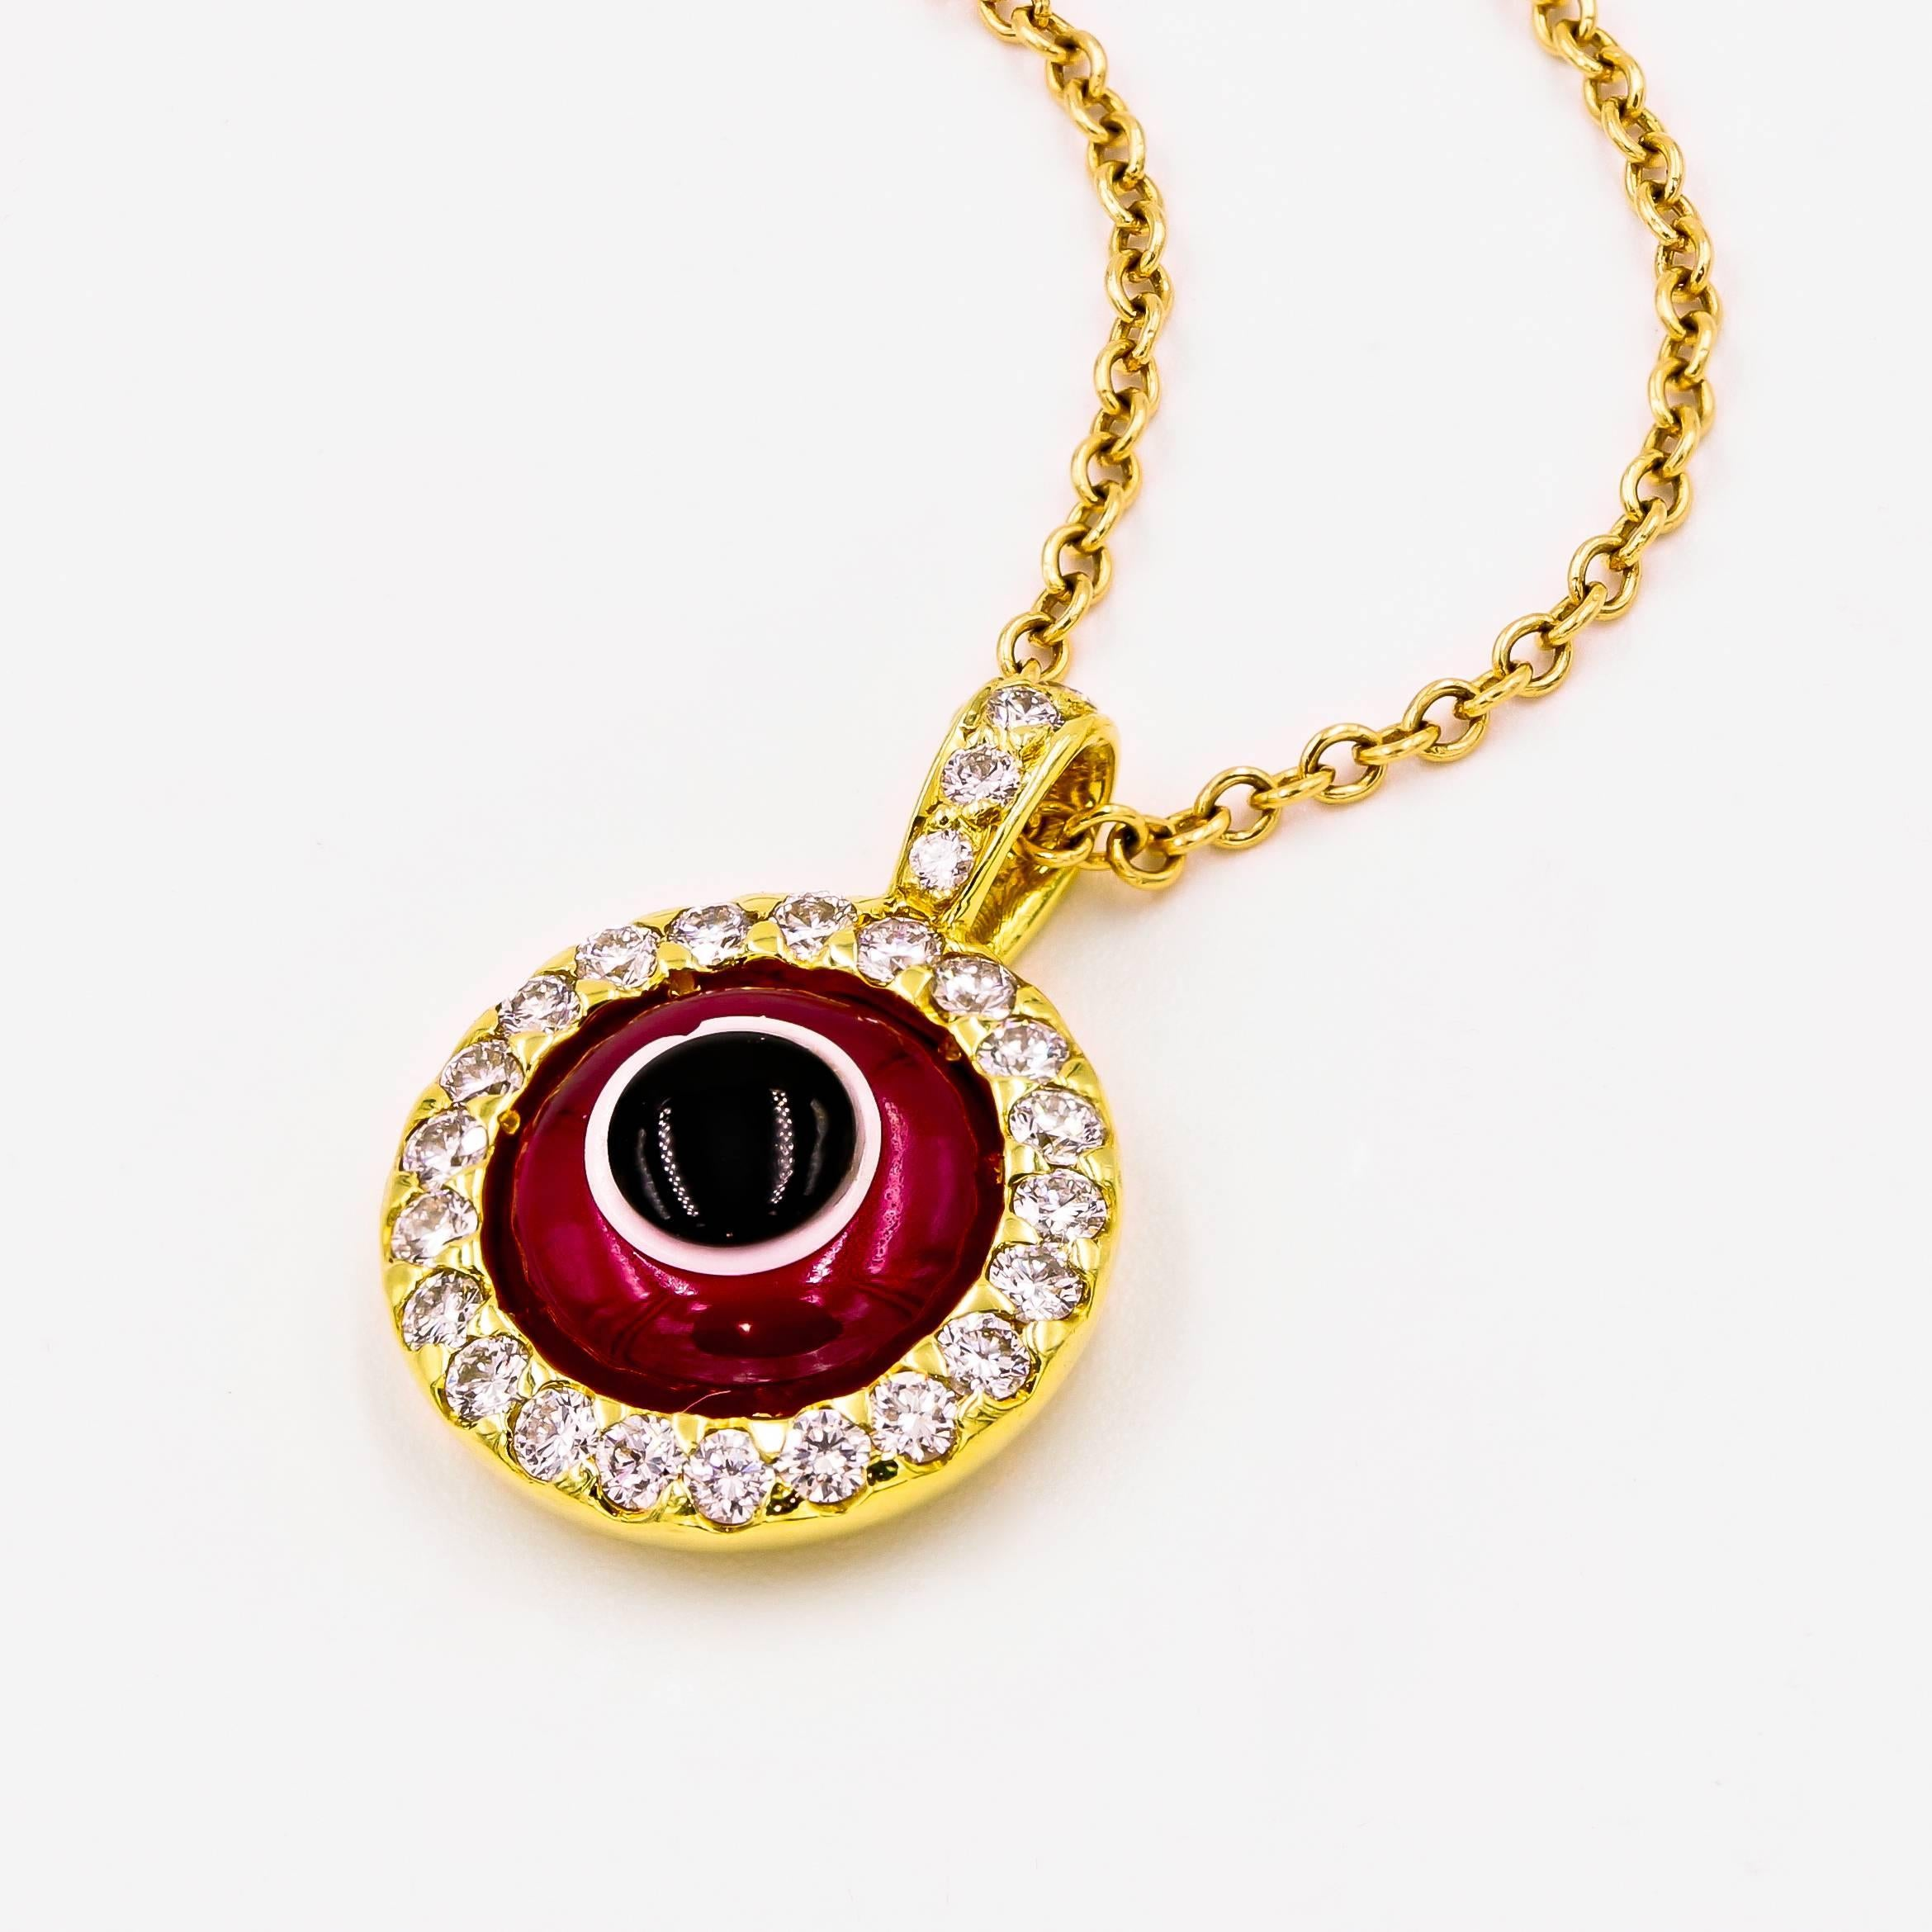 necklace jewelry pendant products eye enlarged evil meyer necklaces jennifer